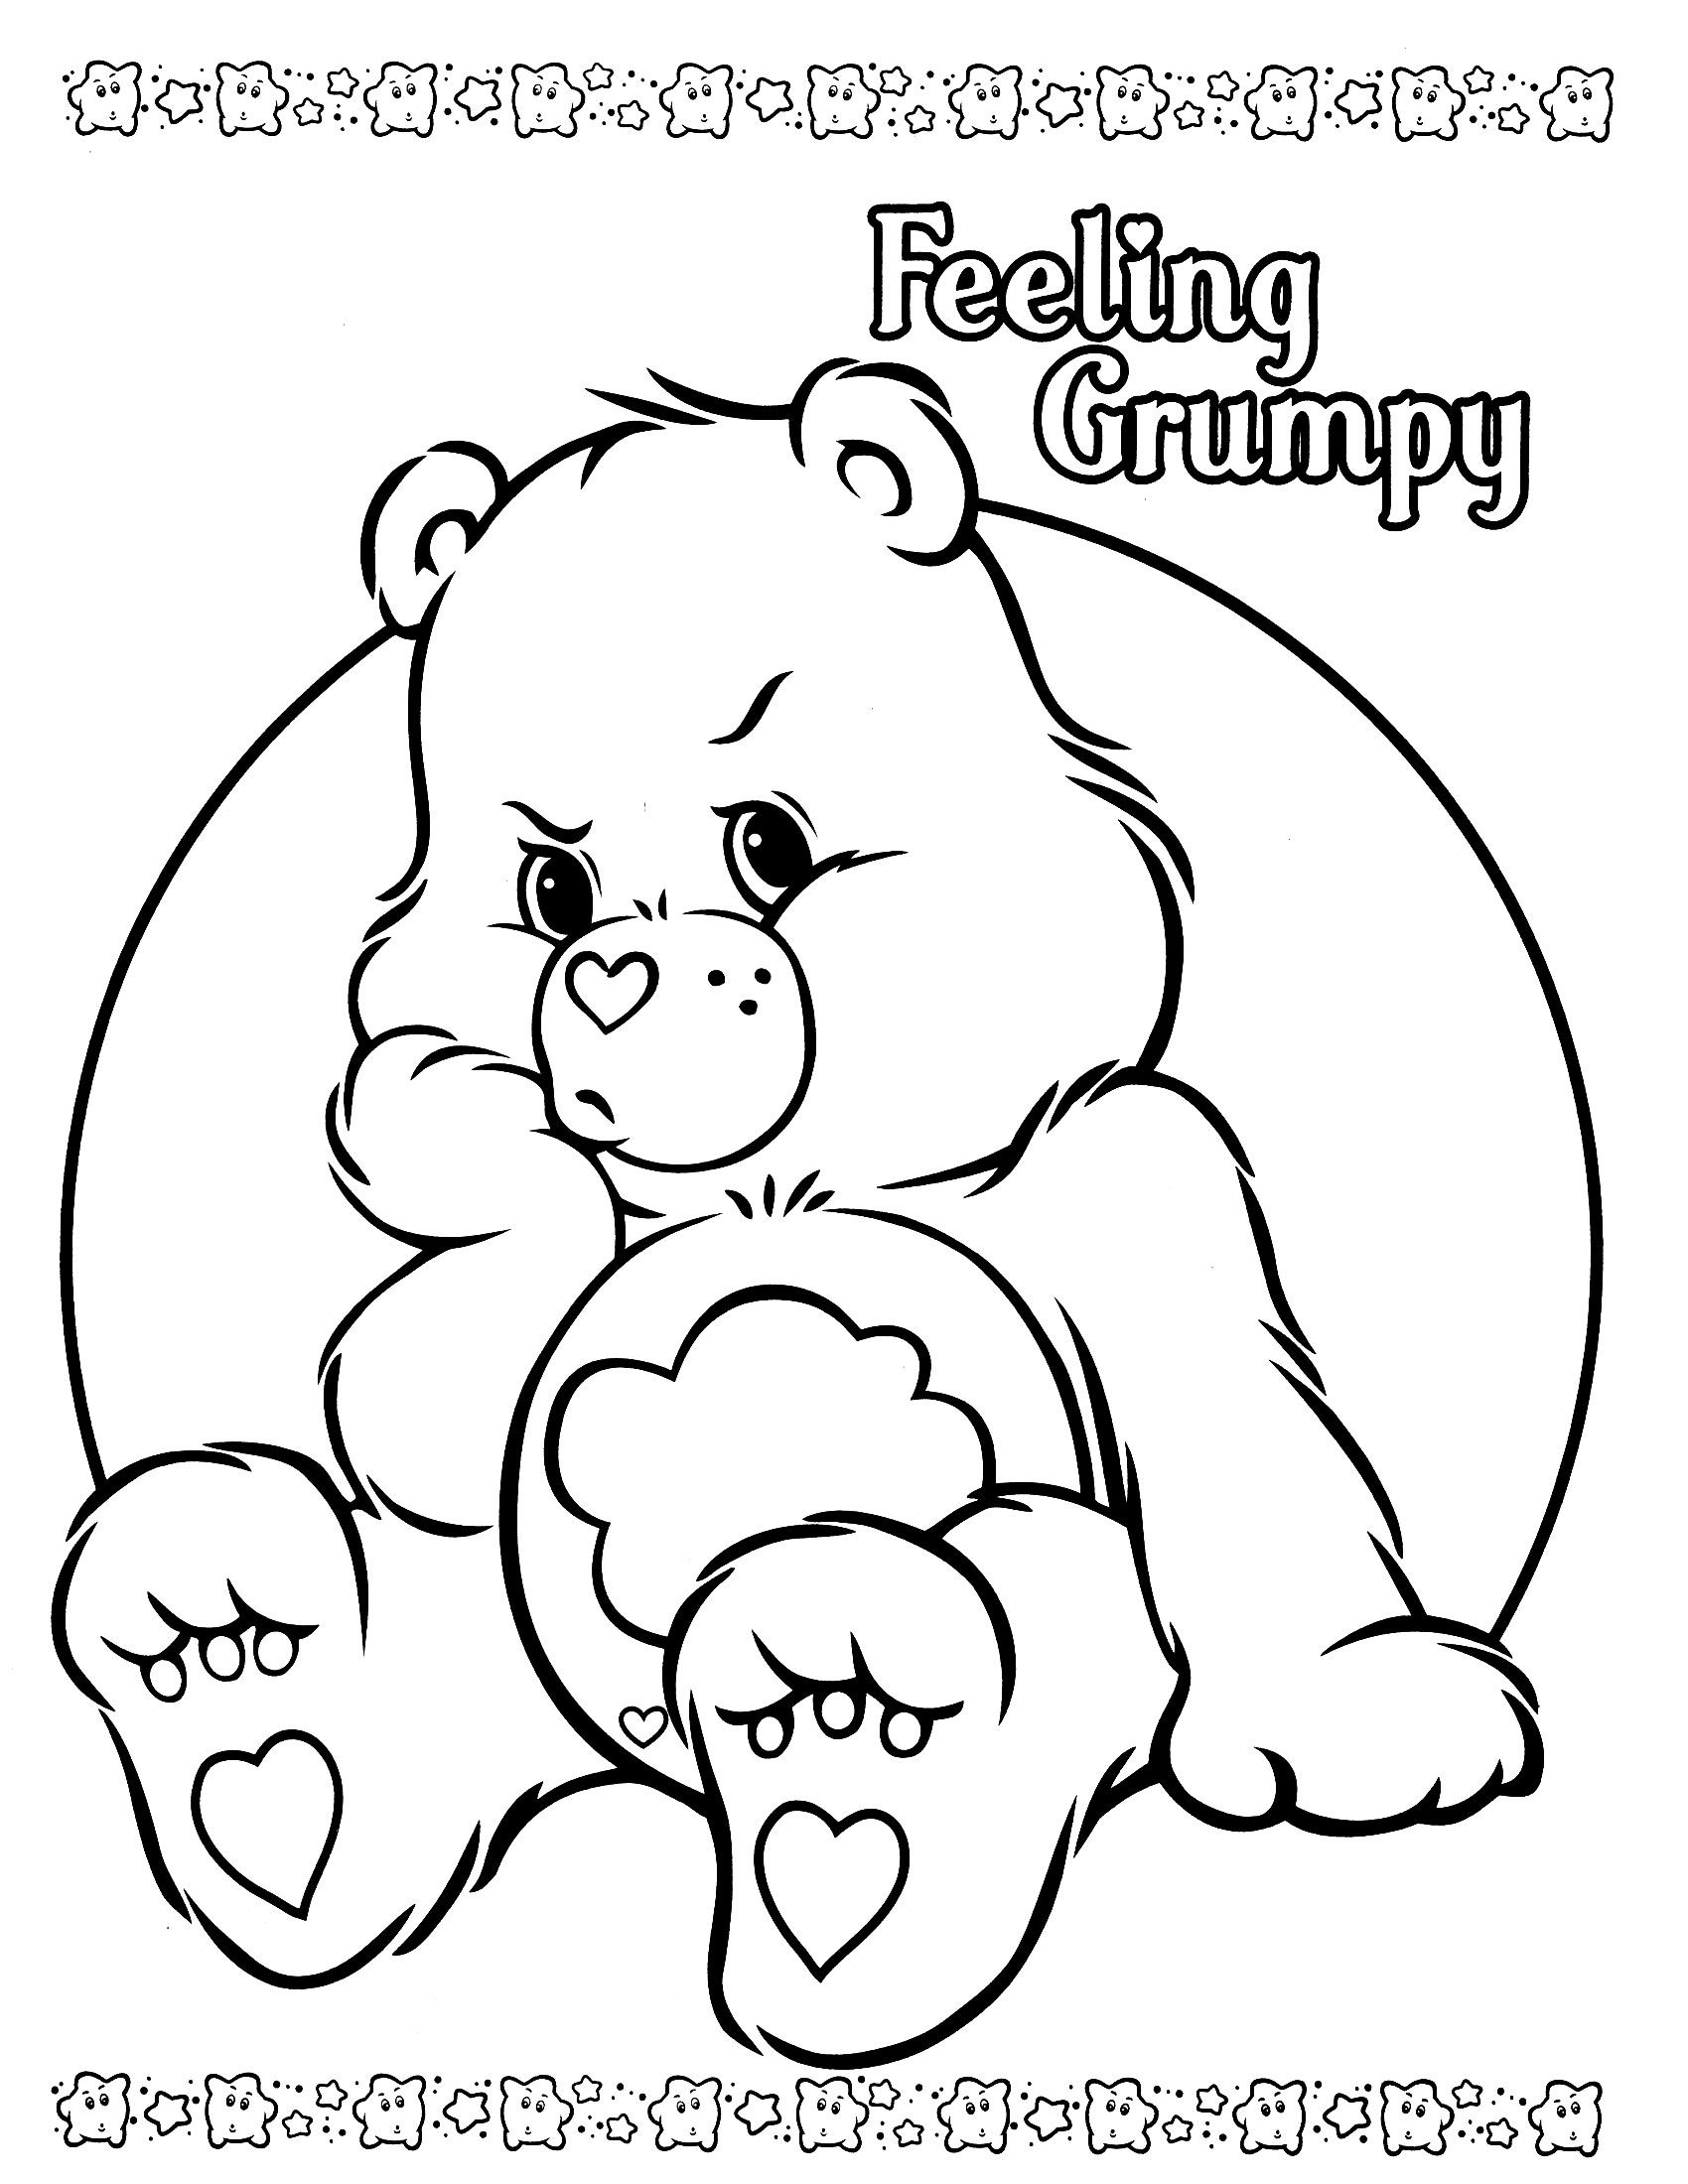 Care Bears Coloring Page Care Bears Pinterest Care Bears - care bear colouring pages to print